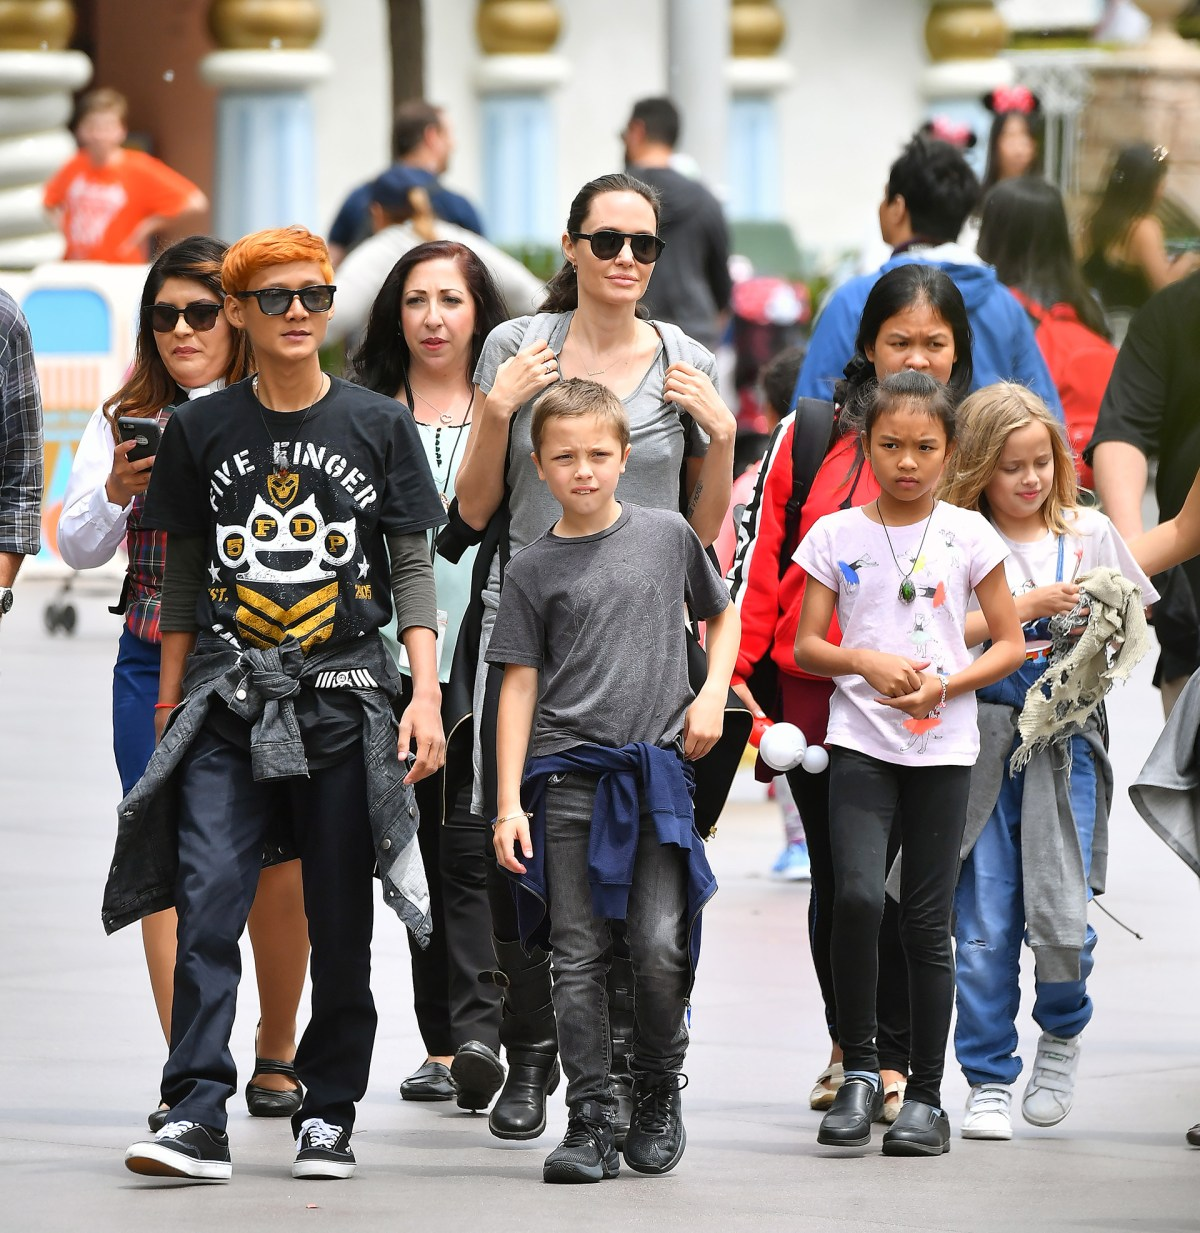 PREMIUM EXCLUSIVE Angelina Jolie And Kids Celebrate Shiloh's 11th Birthday At Disneyland